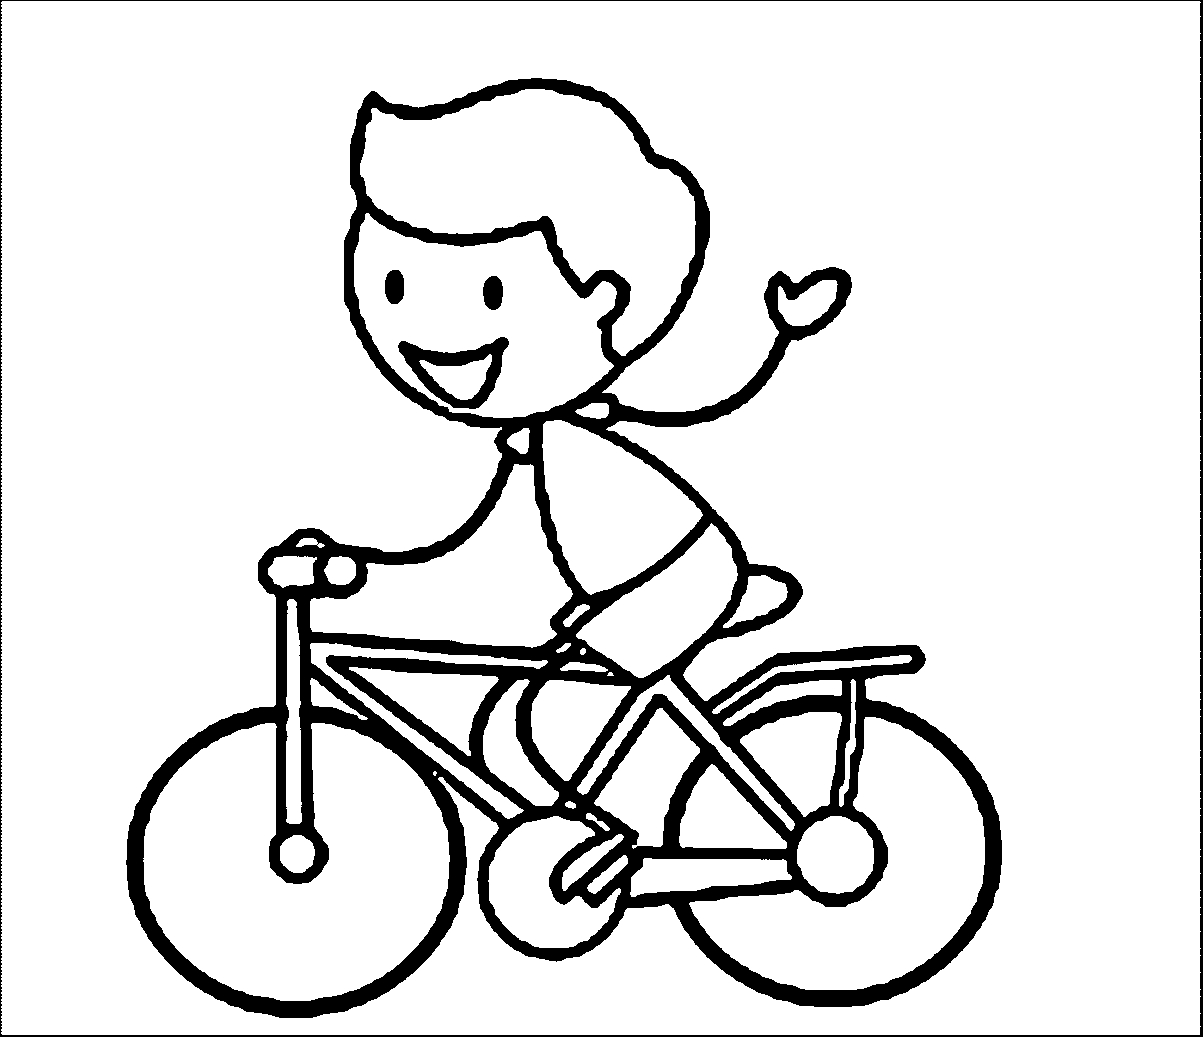 Bike Riding Coloring Pages